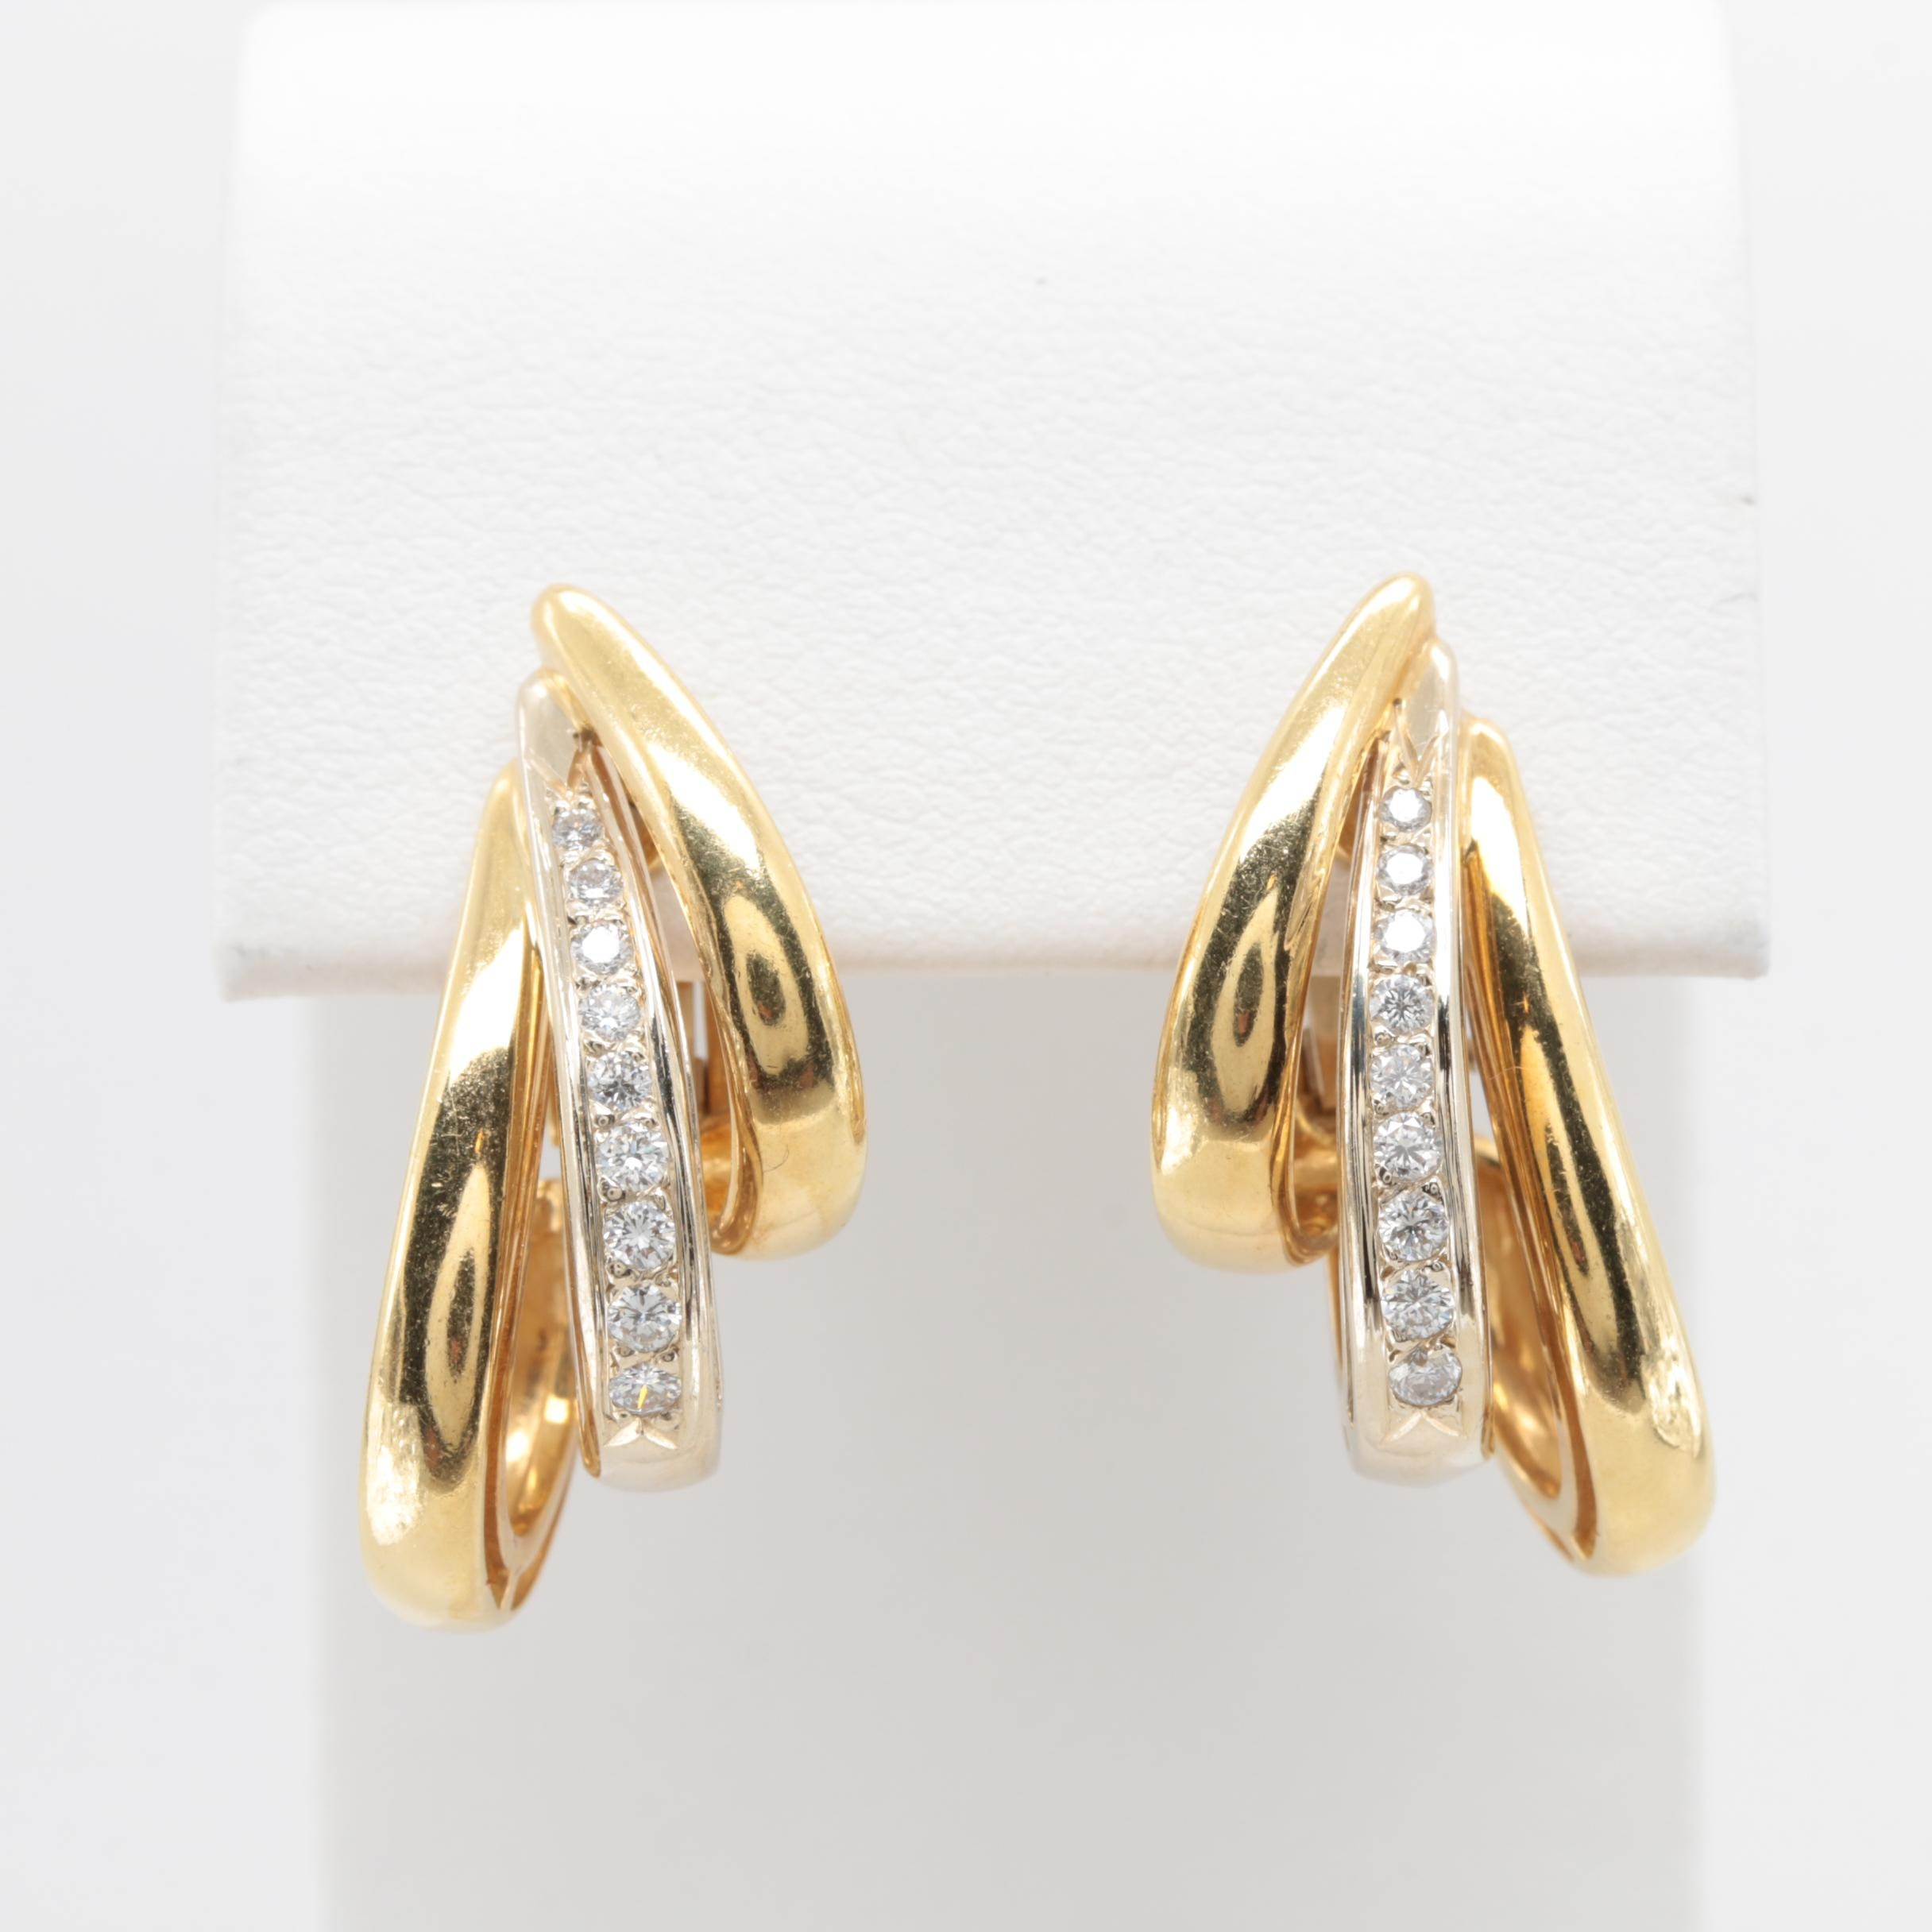 Perfecta Designs 18K Two-Tone Gold Diamond Omega Back Earrings